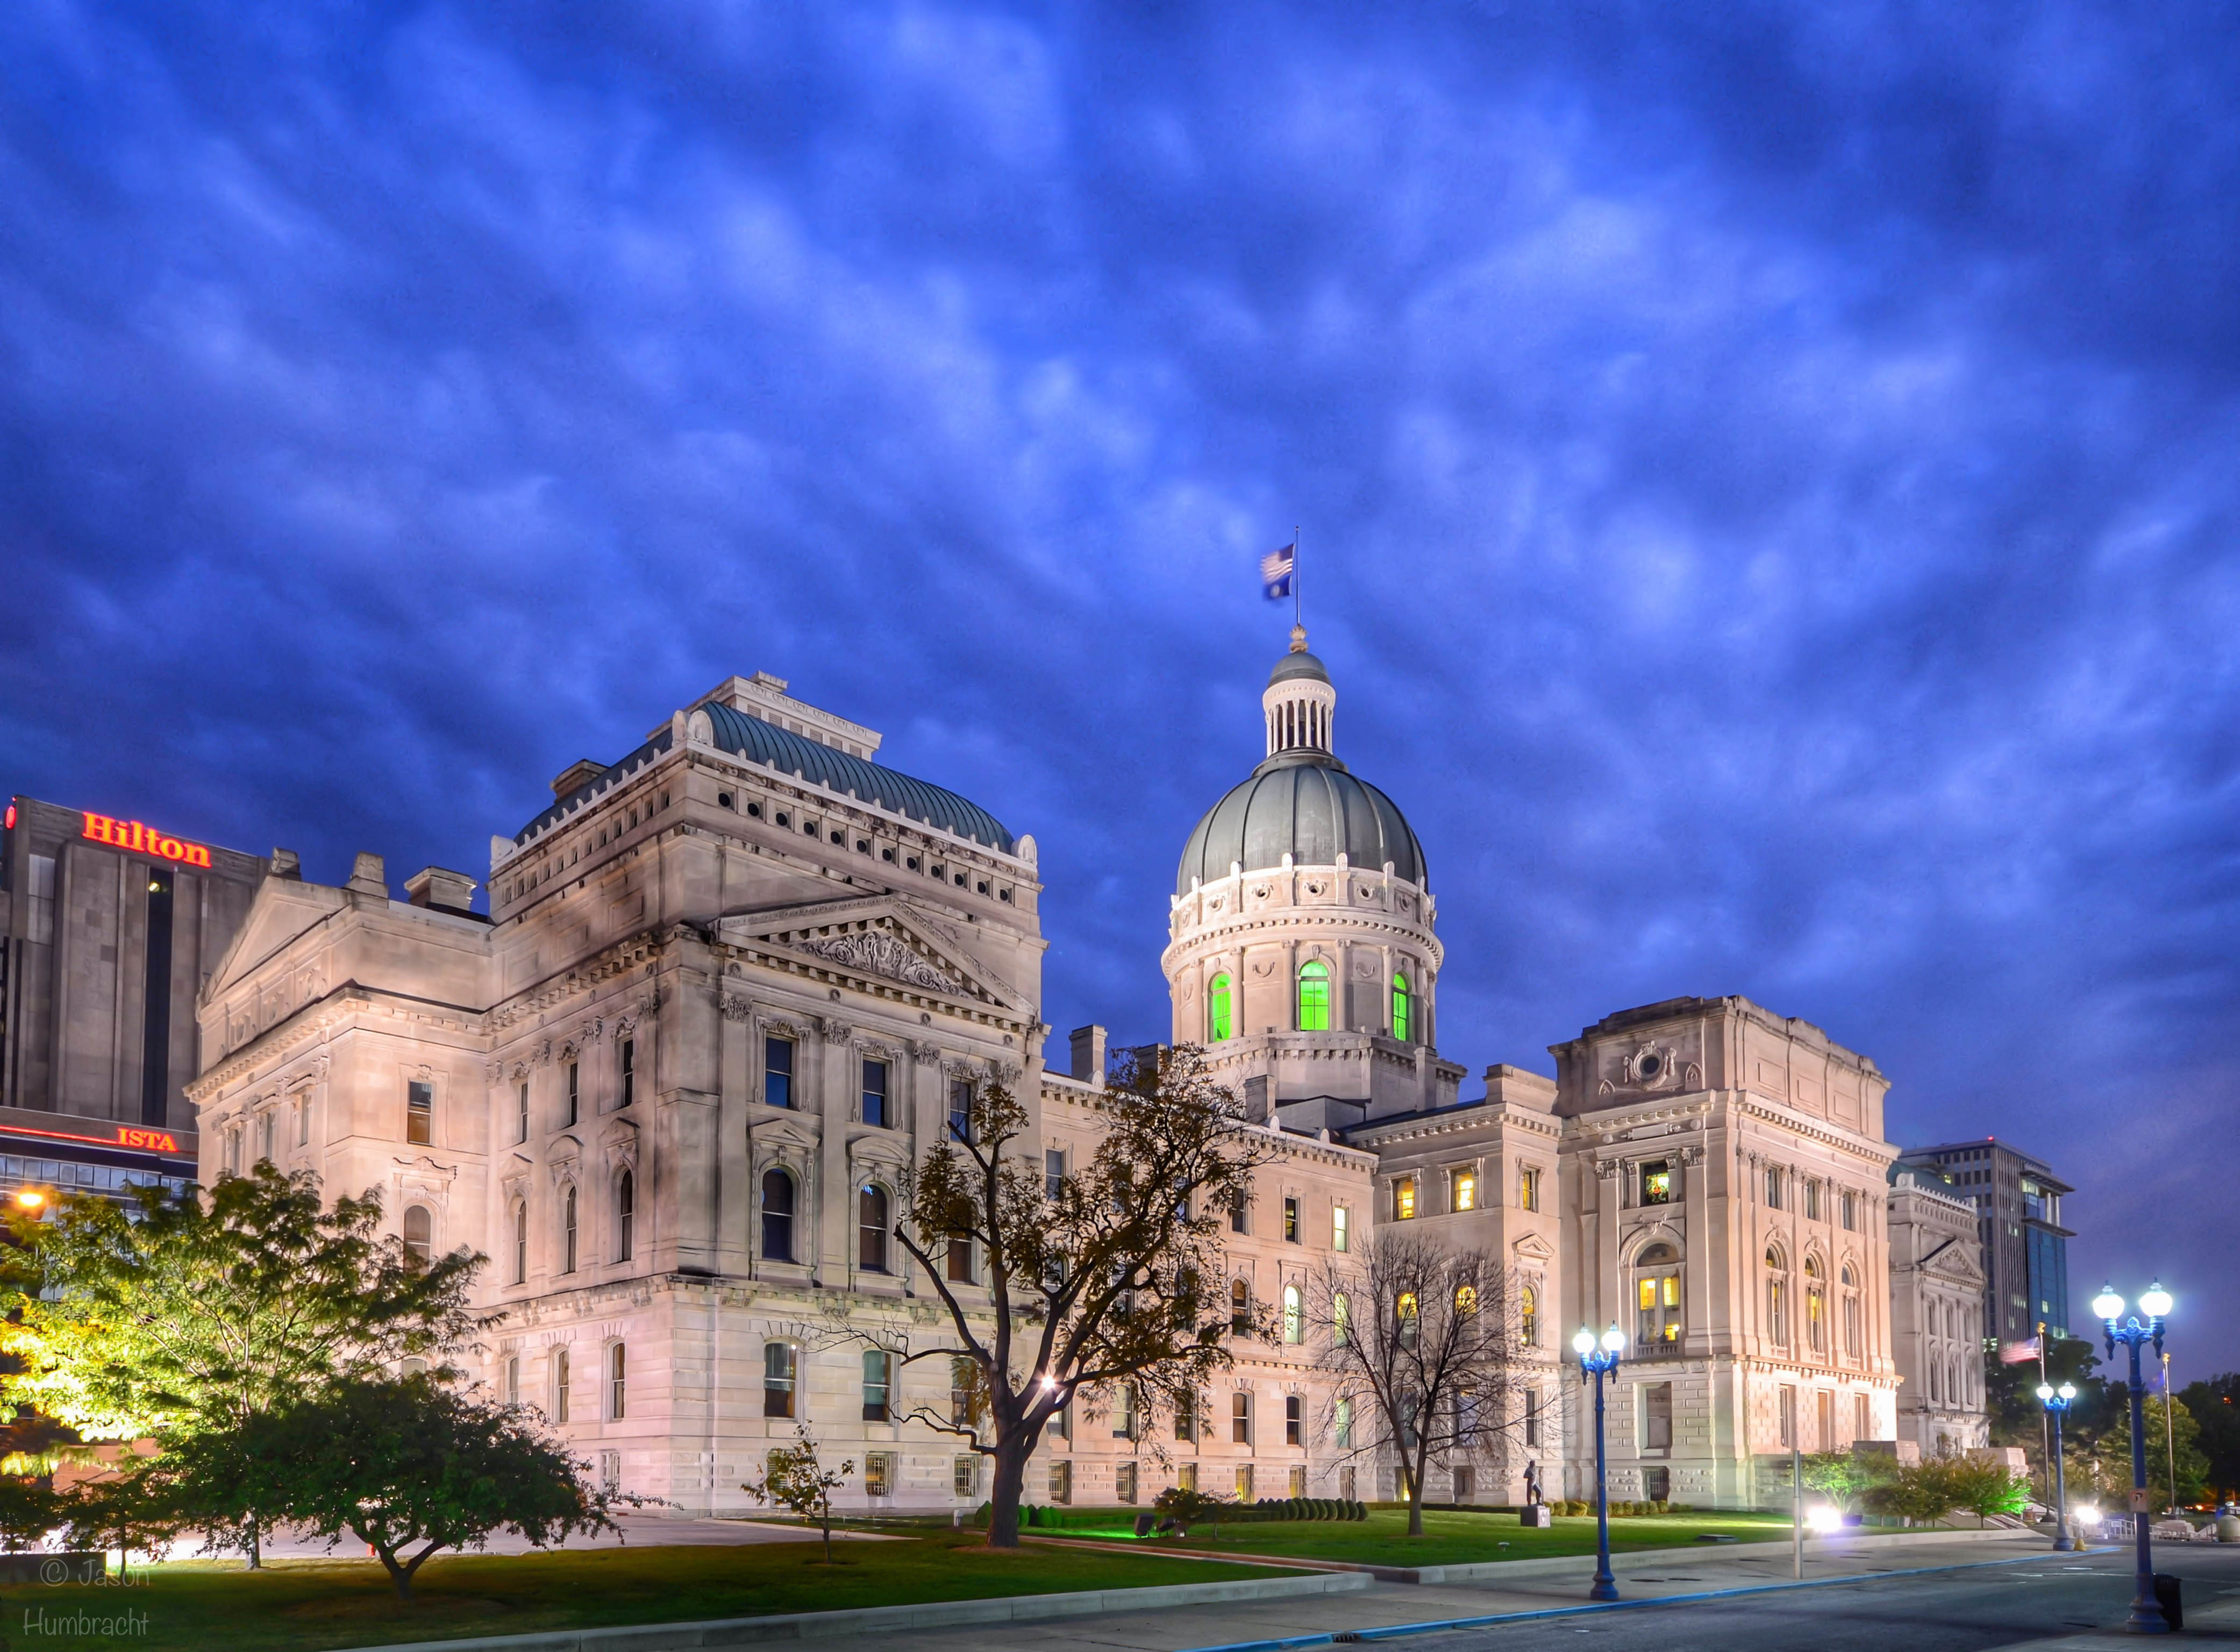 Images From The Indiana State Capital